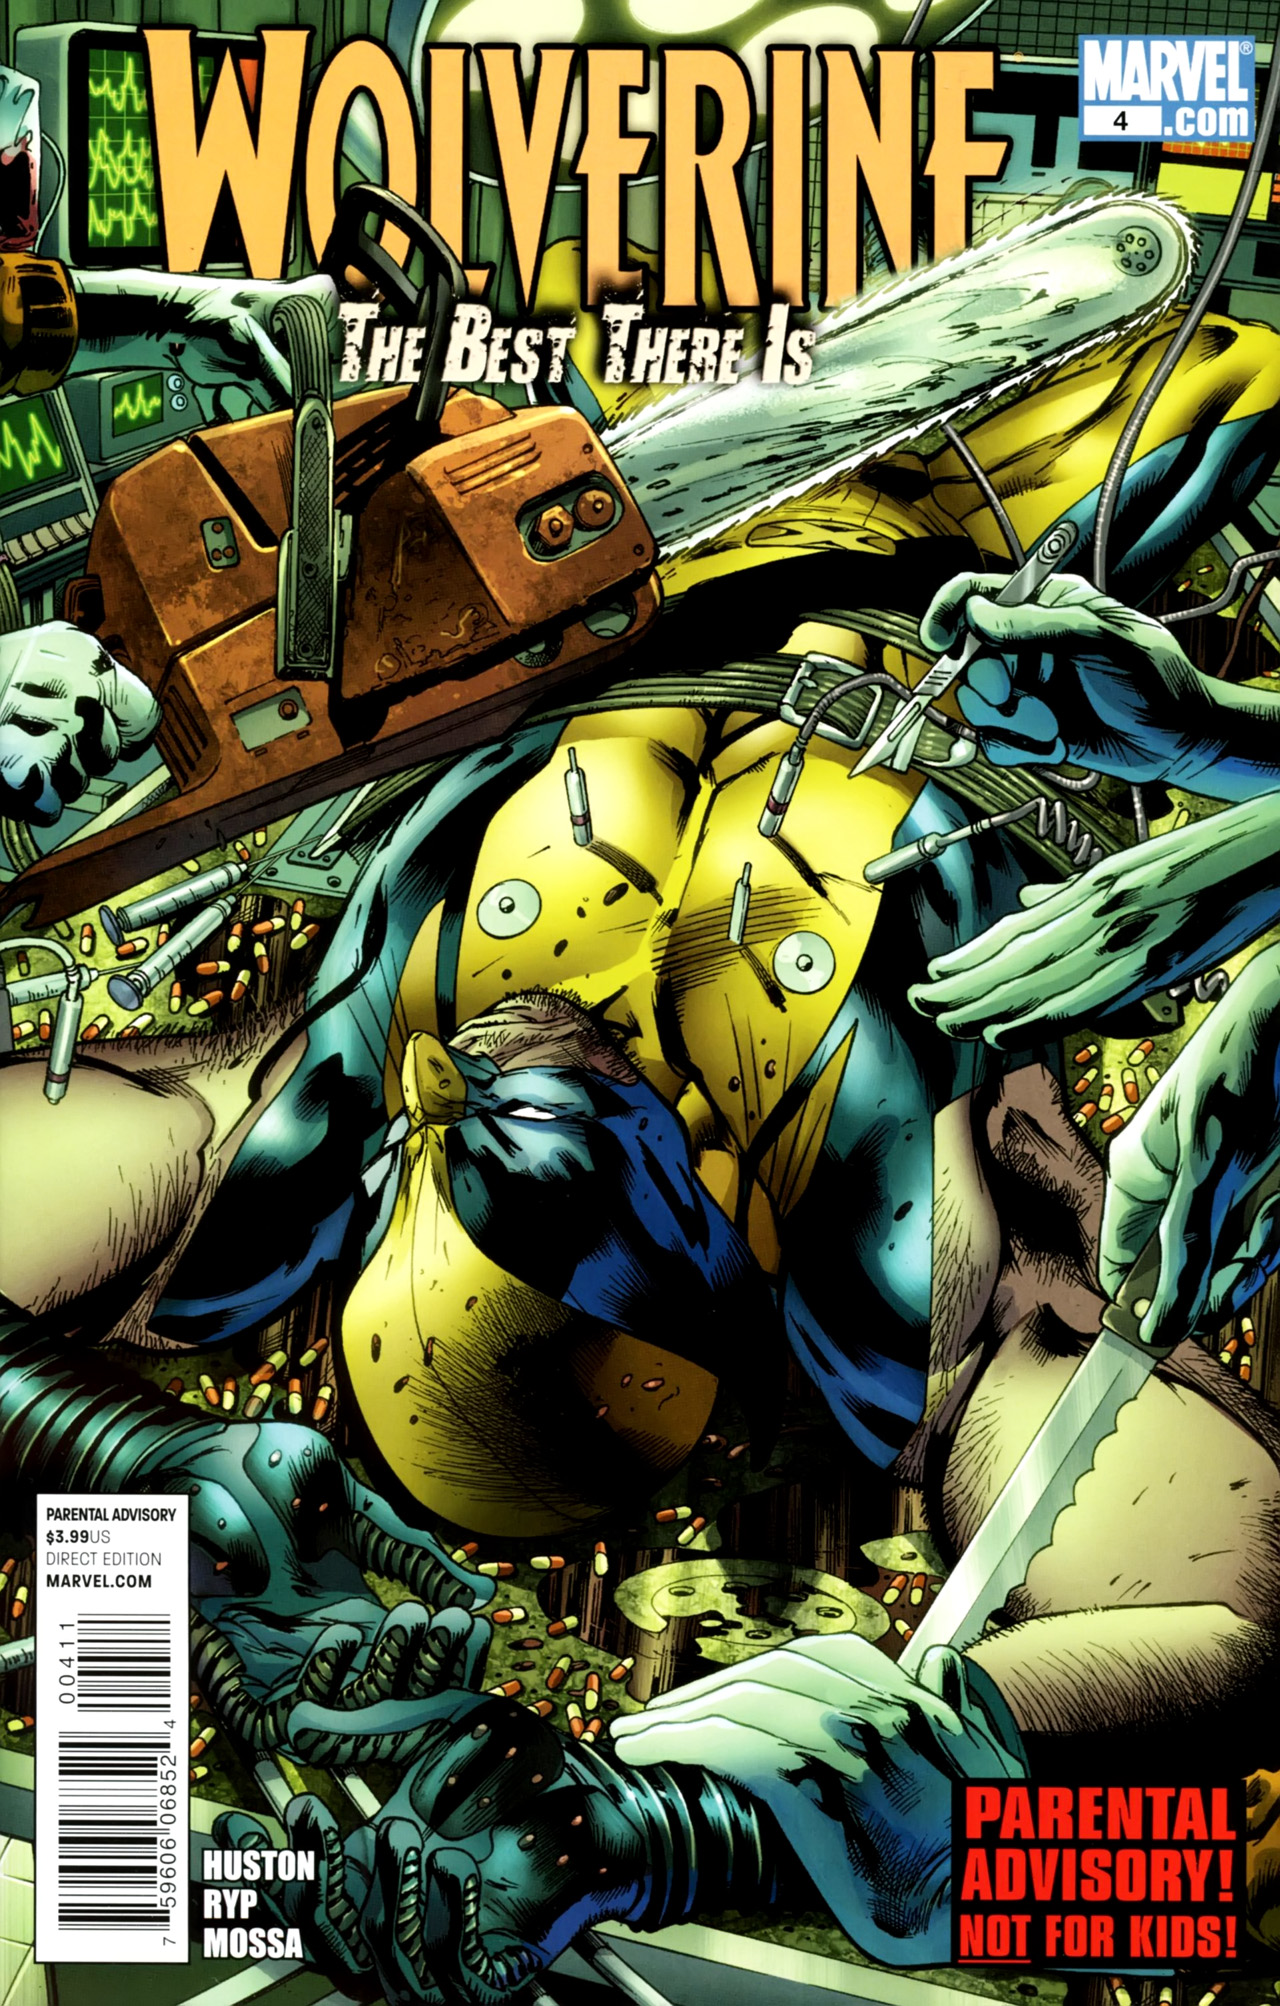 Read online Wolverine: The Best There Is comic -  Issue #4 - 1